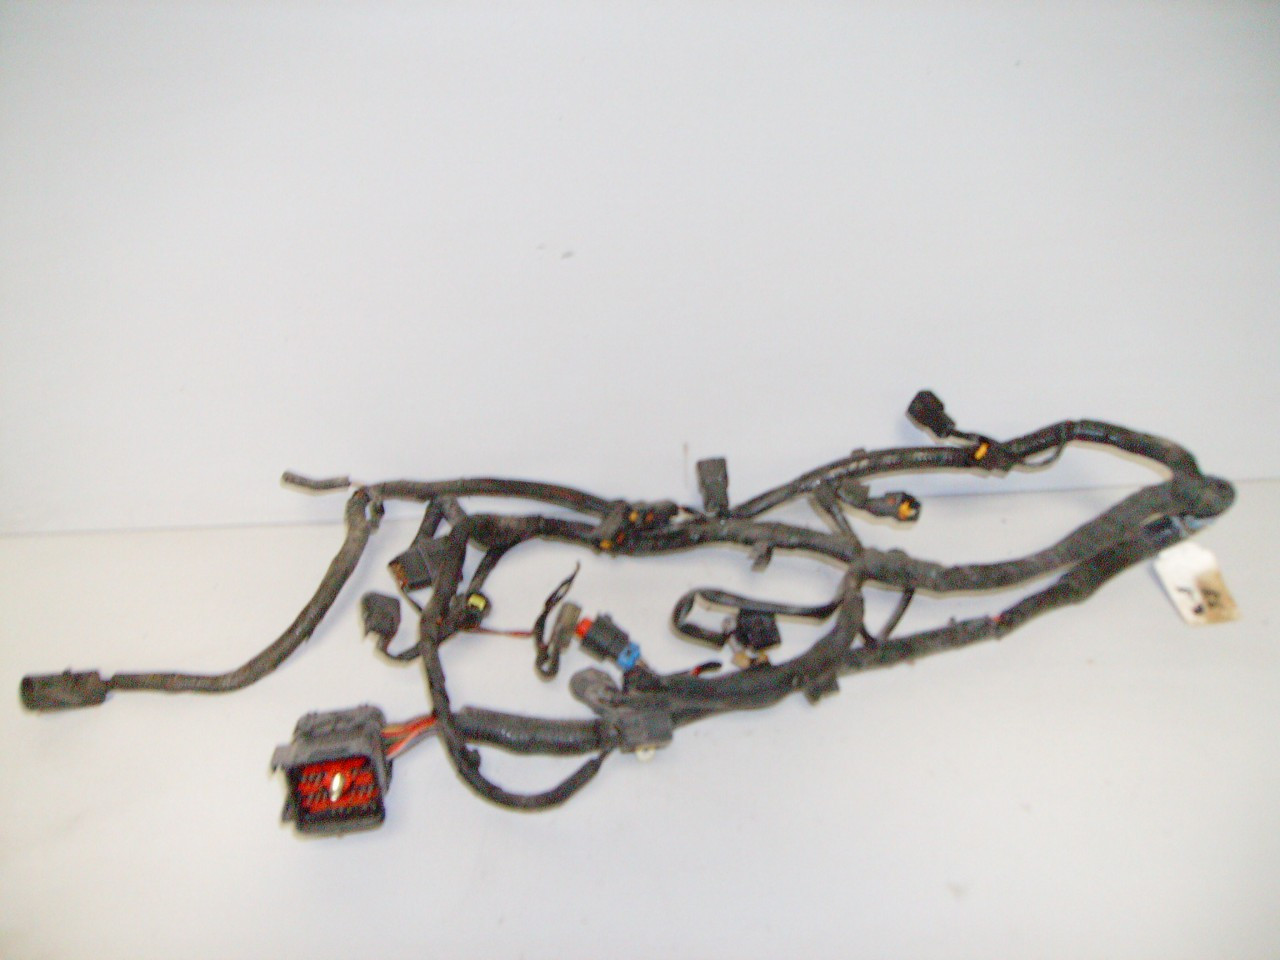 1996 1998 ford mustang 3 8 engine injection wire harness lx v6 2016 Ford Mustang Wiring Harness at 1996 Ford Mustang Wiring Harness